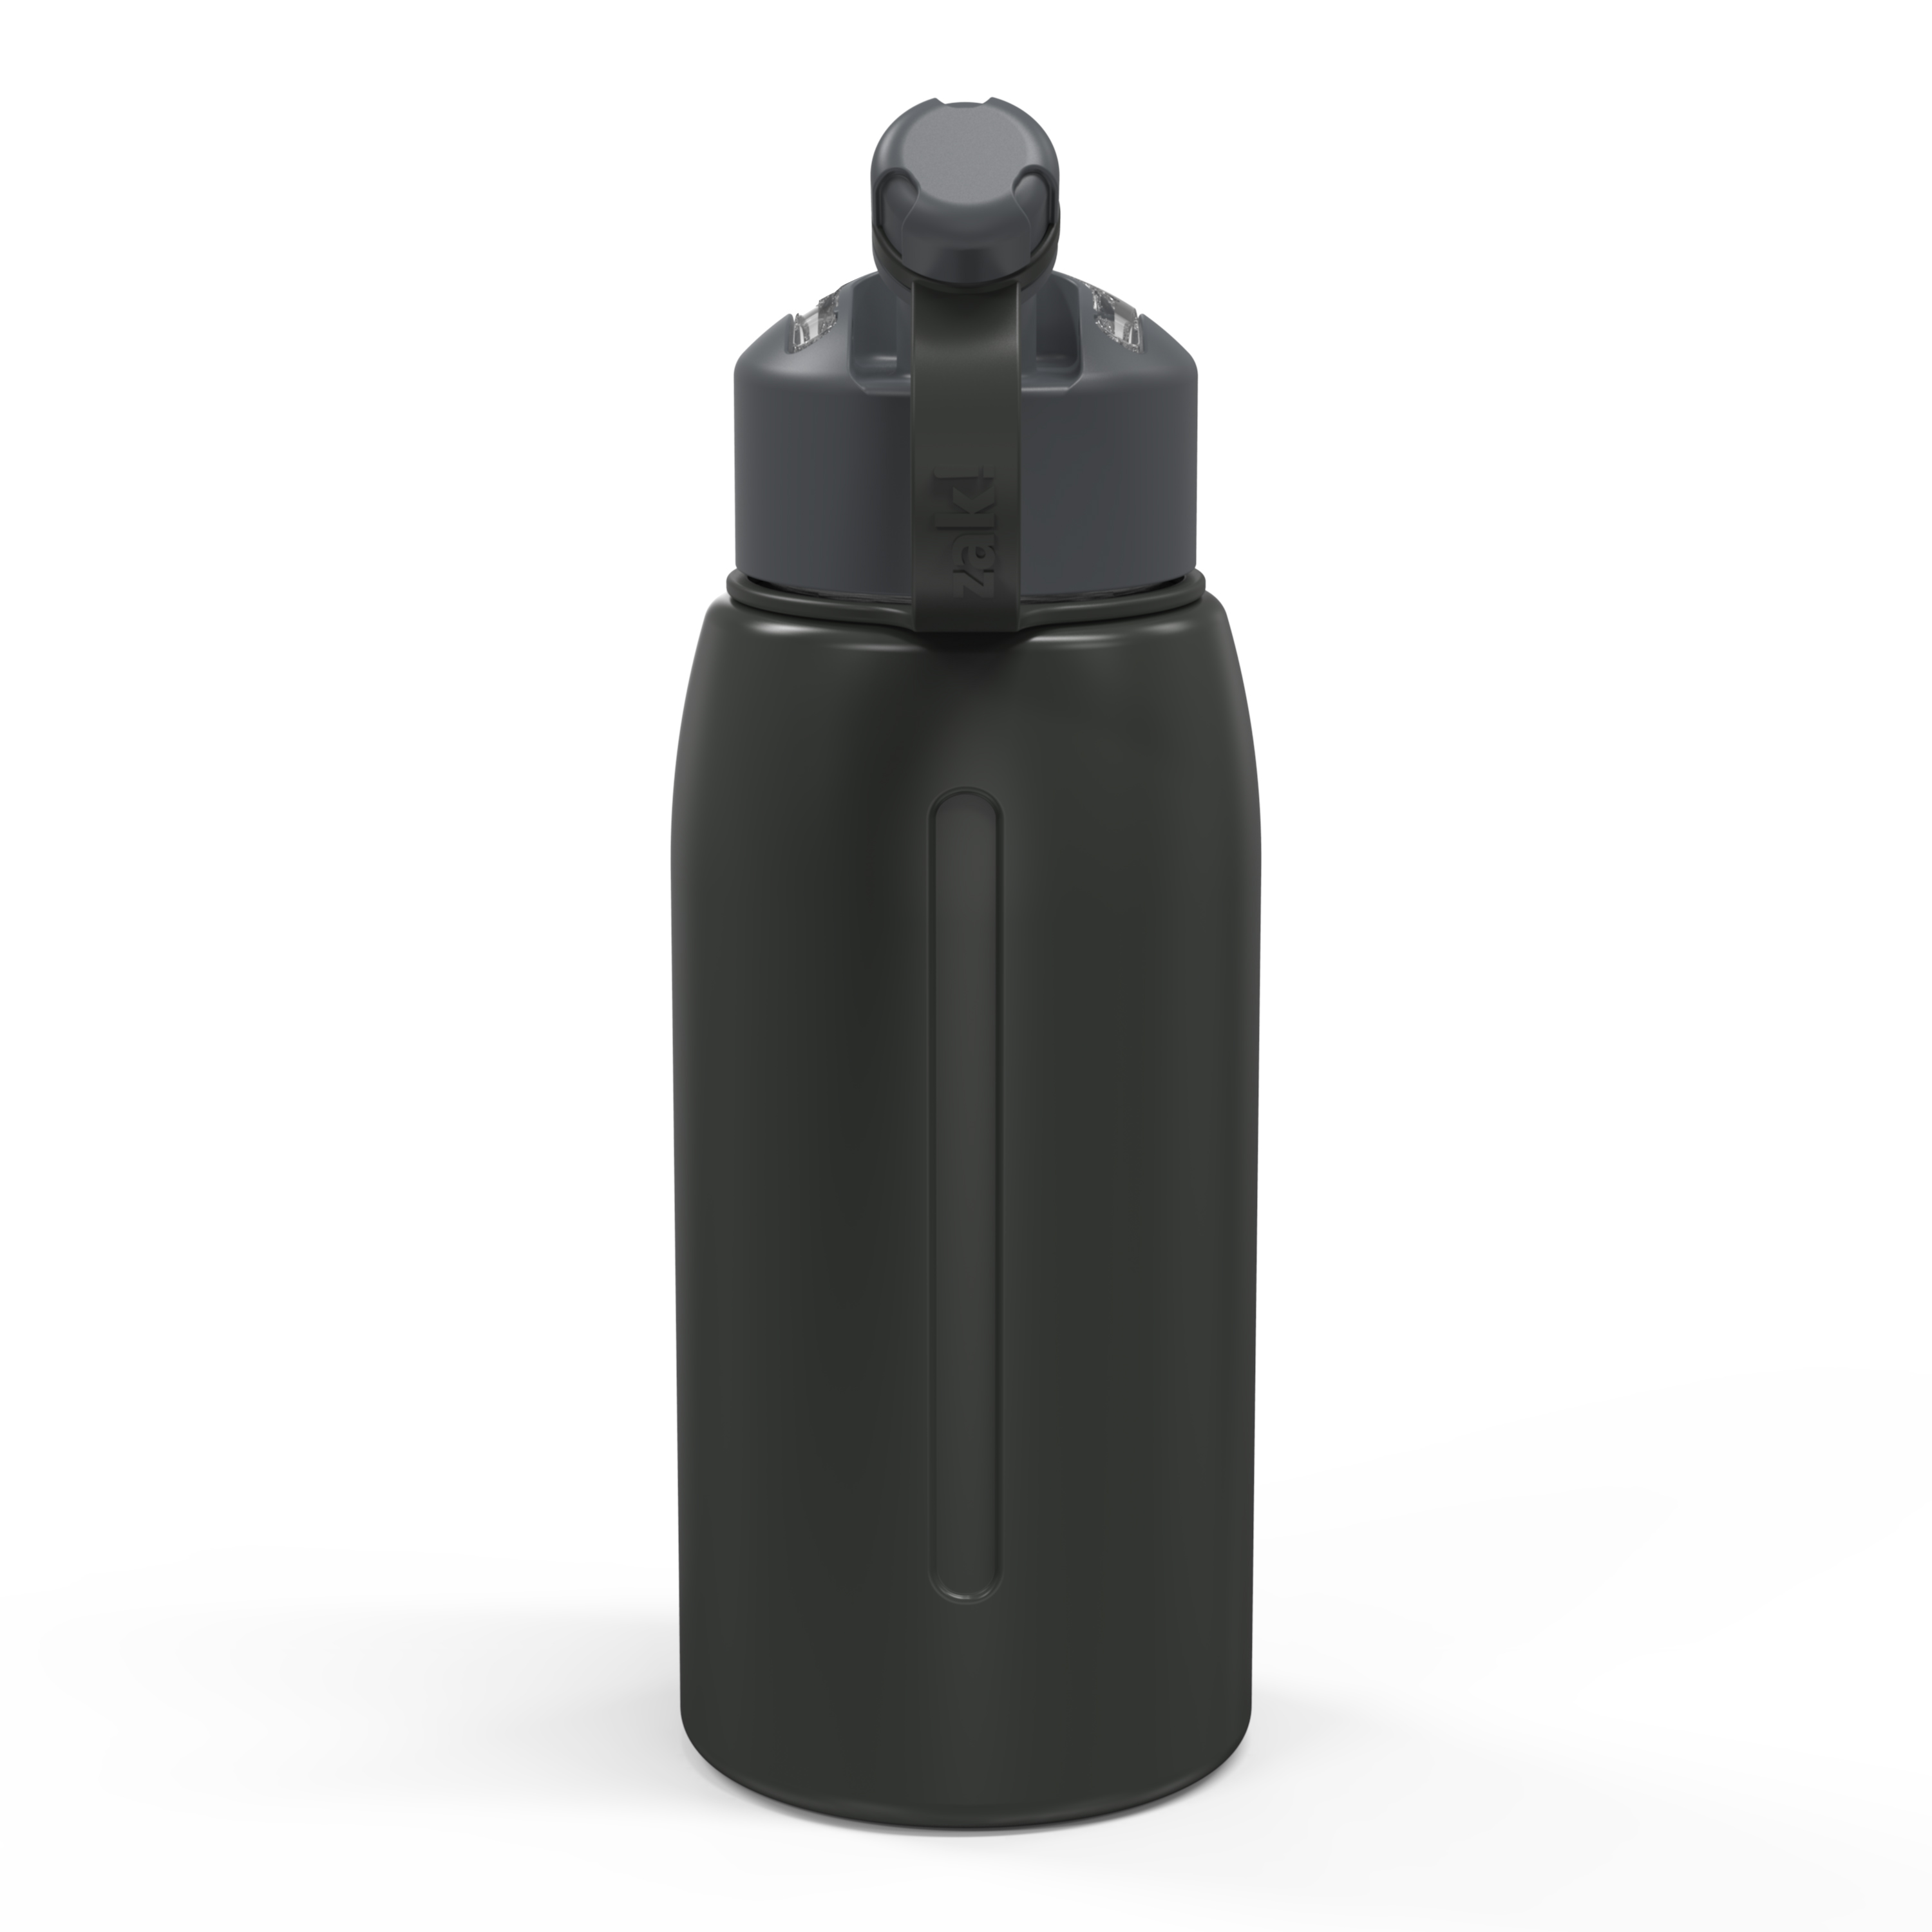 Genesis 32 ounce Vacuum Insulated Stainless Steel Tumbler, Charcoal slideshow image 8